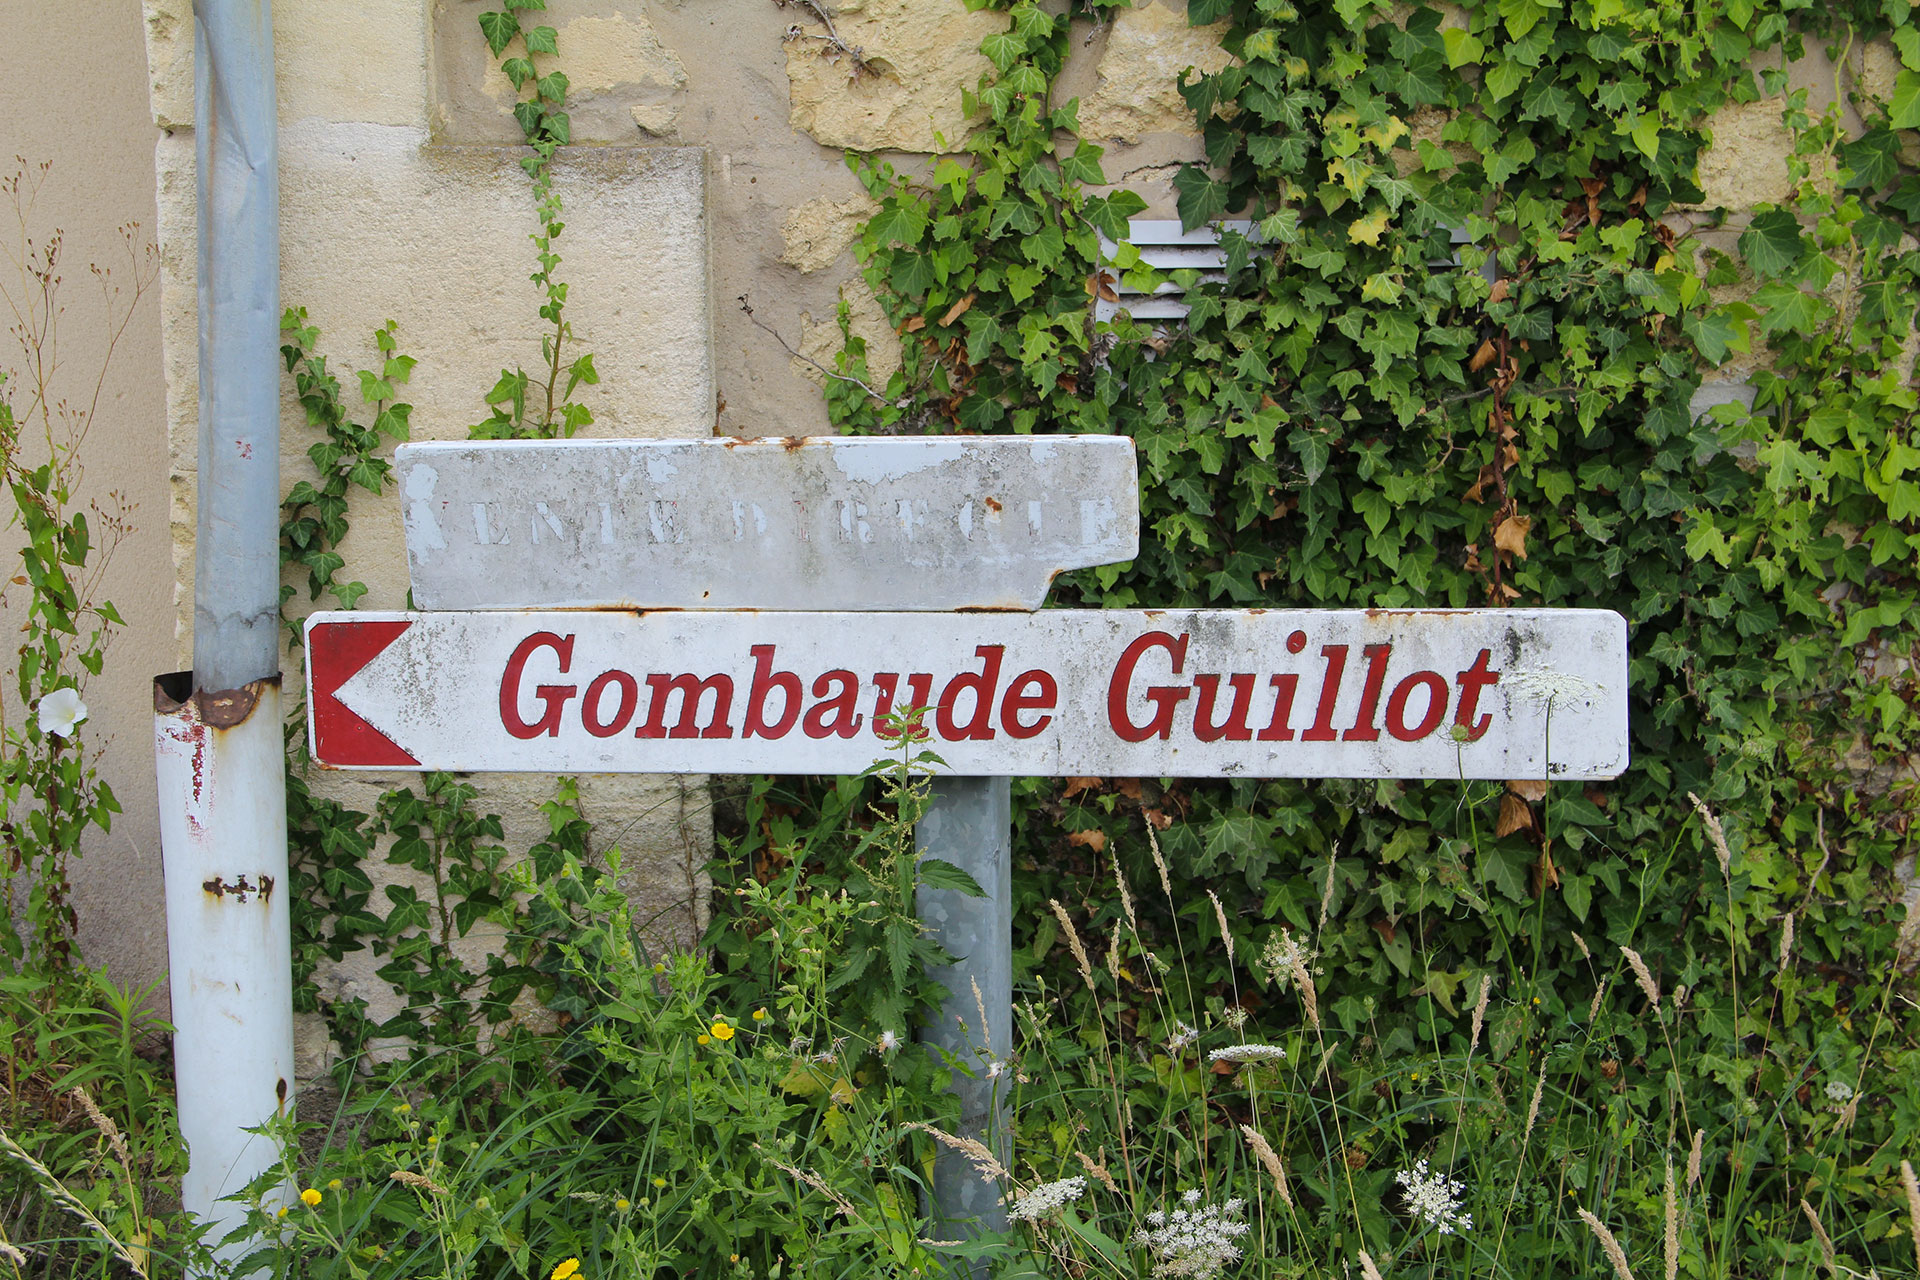 Gombaude Guillot